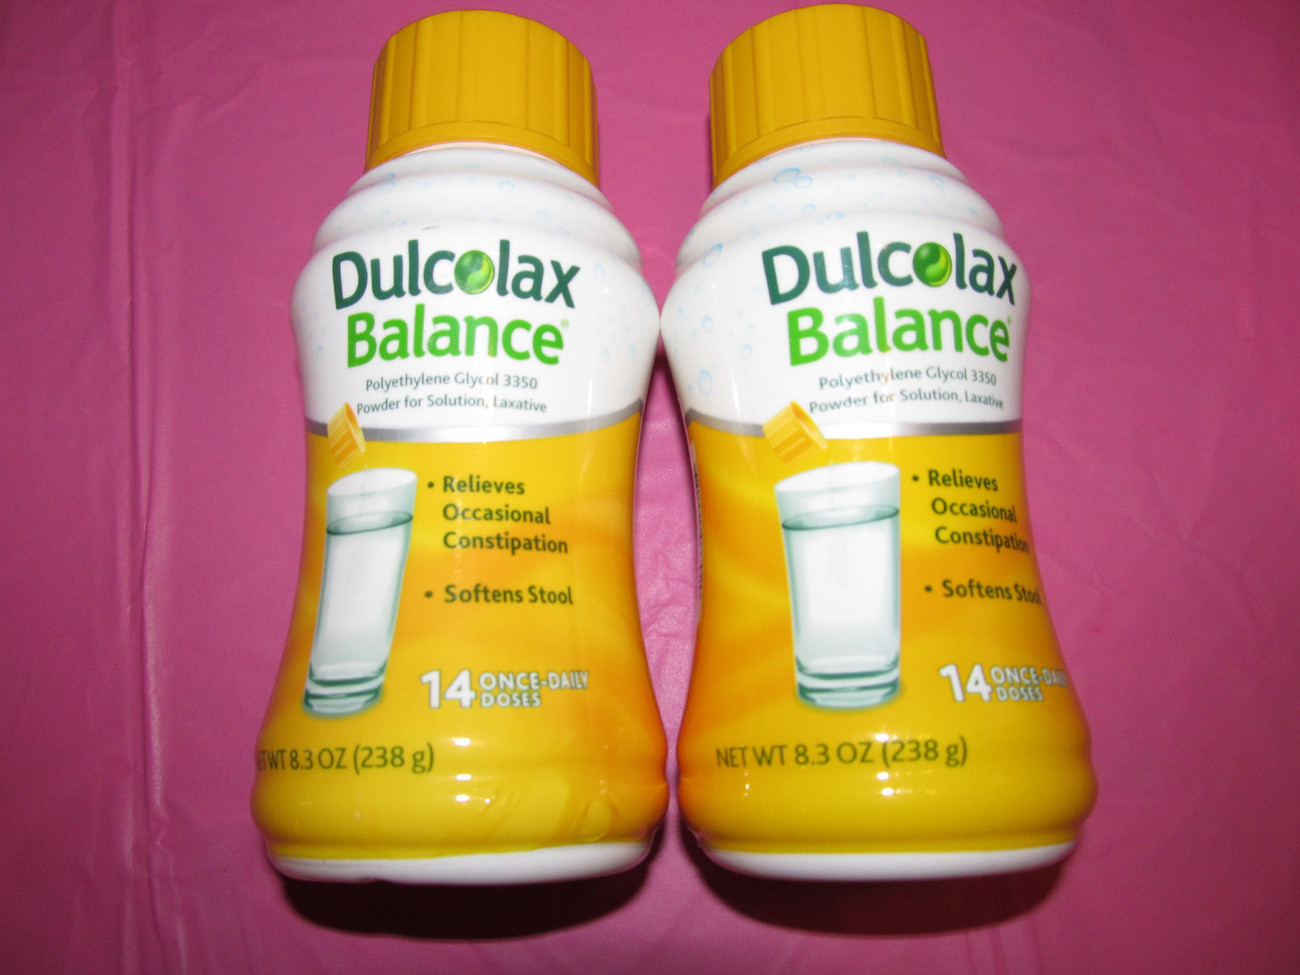 Buy over the counter medicine for constipation - Dulcolax Balance~Relieves Occasional Constipation~lot of (2)